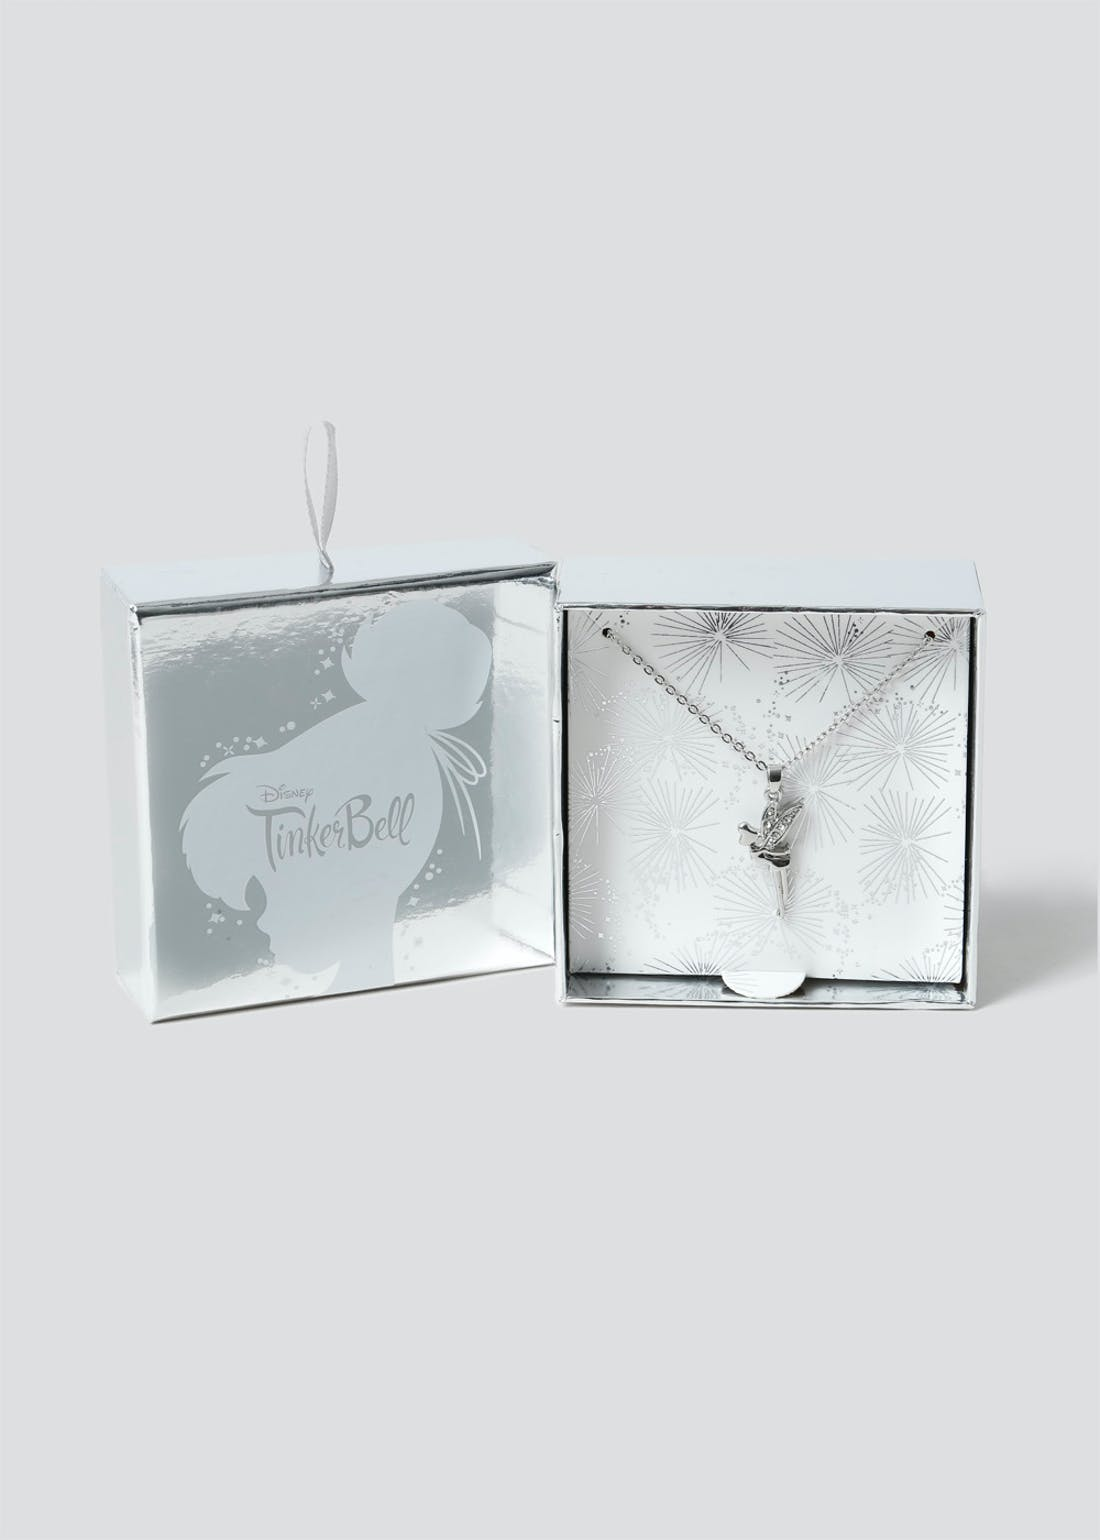 Disney Tinker Bell Bell Necklace Gift Box.